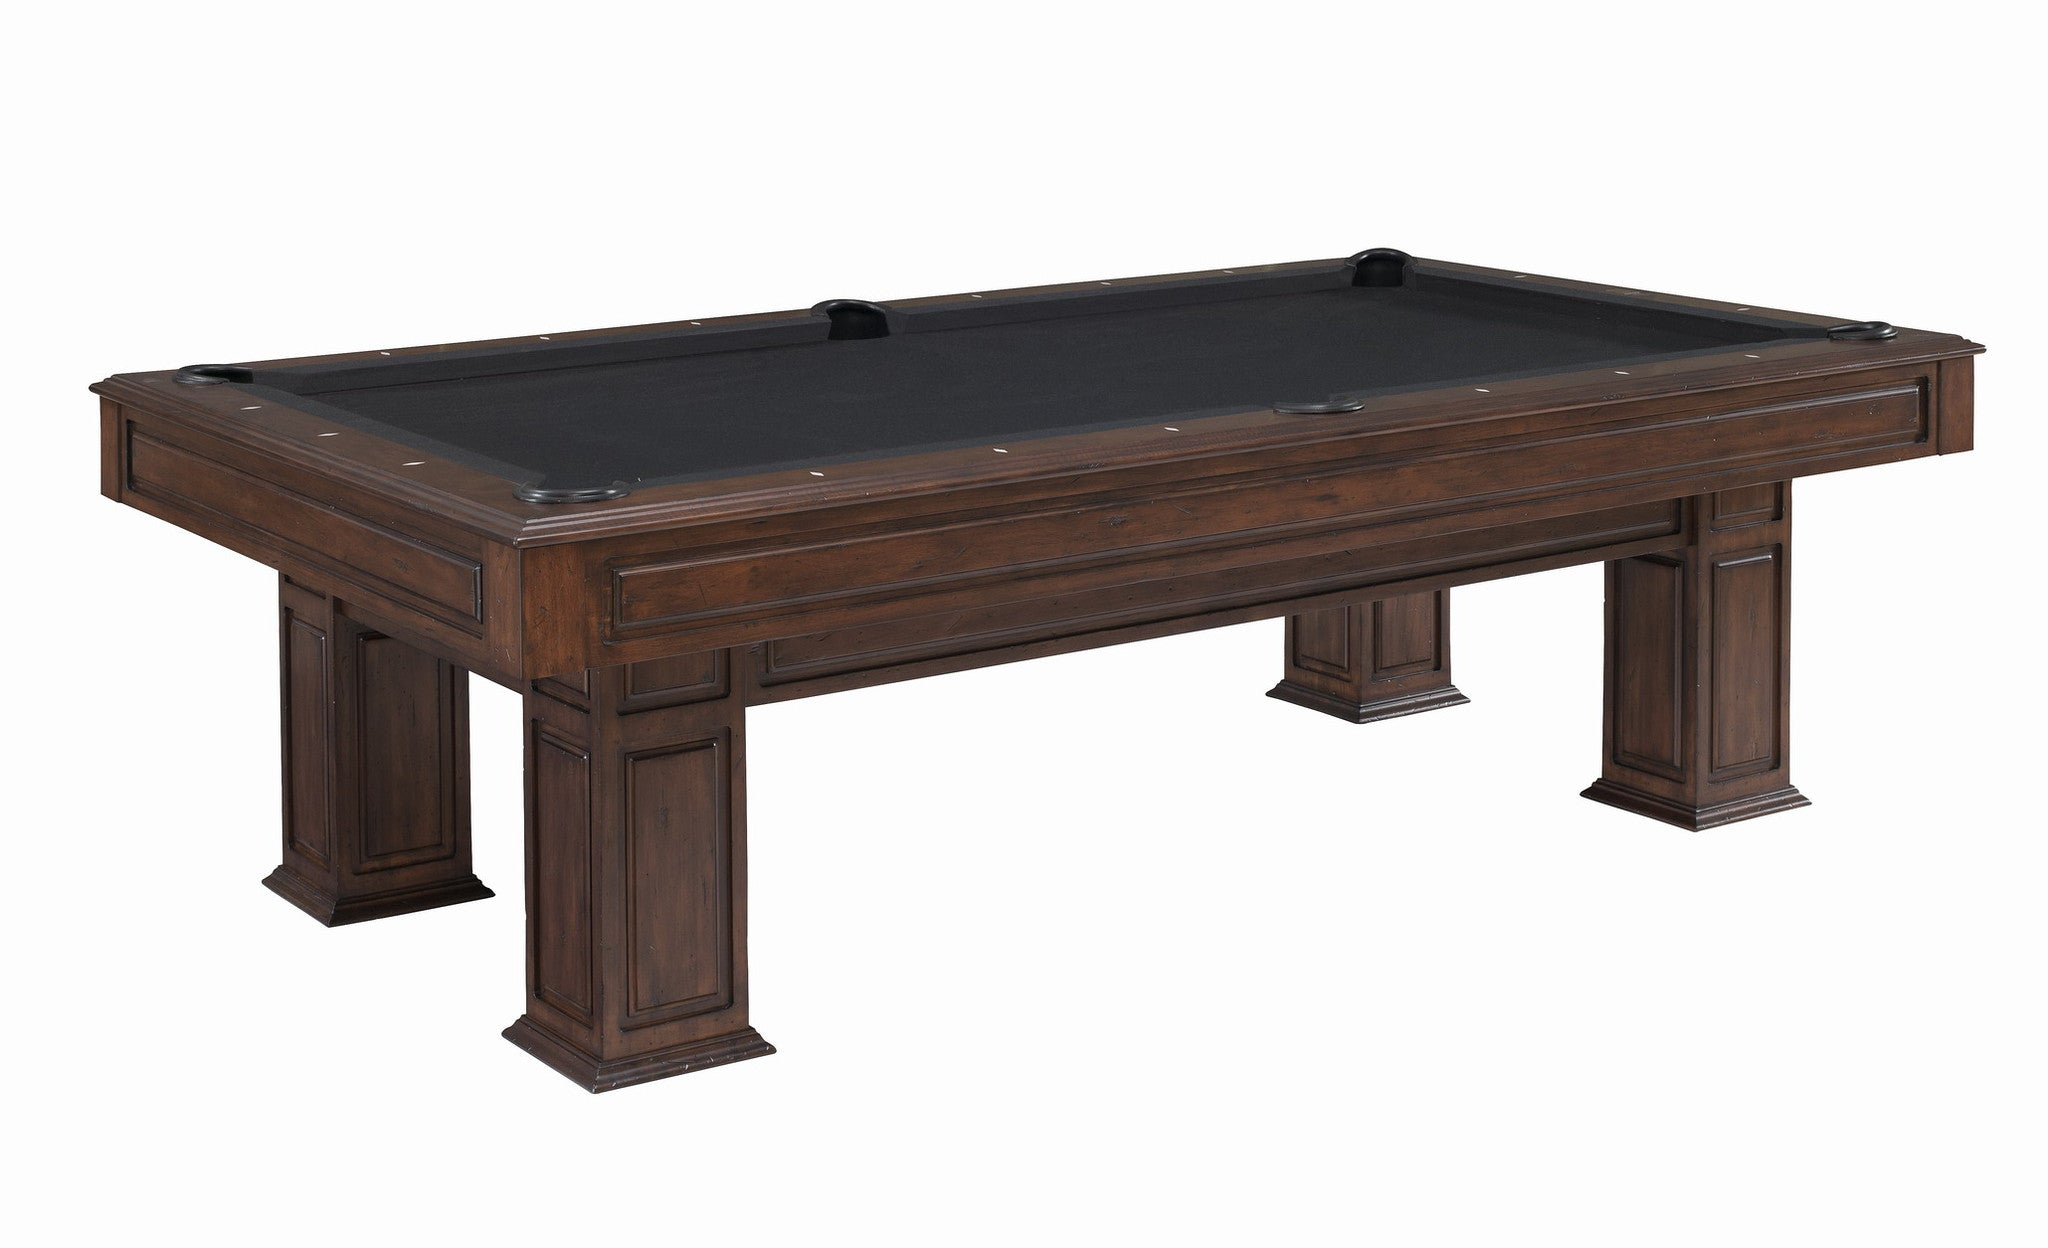 Legacy Billiards Signature Series Landon II Pool Table Master Zs - Pool table side panels